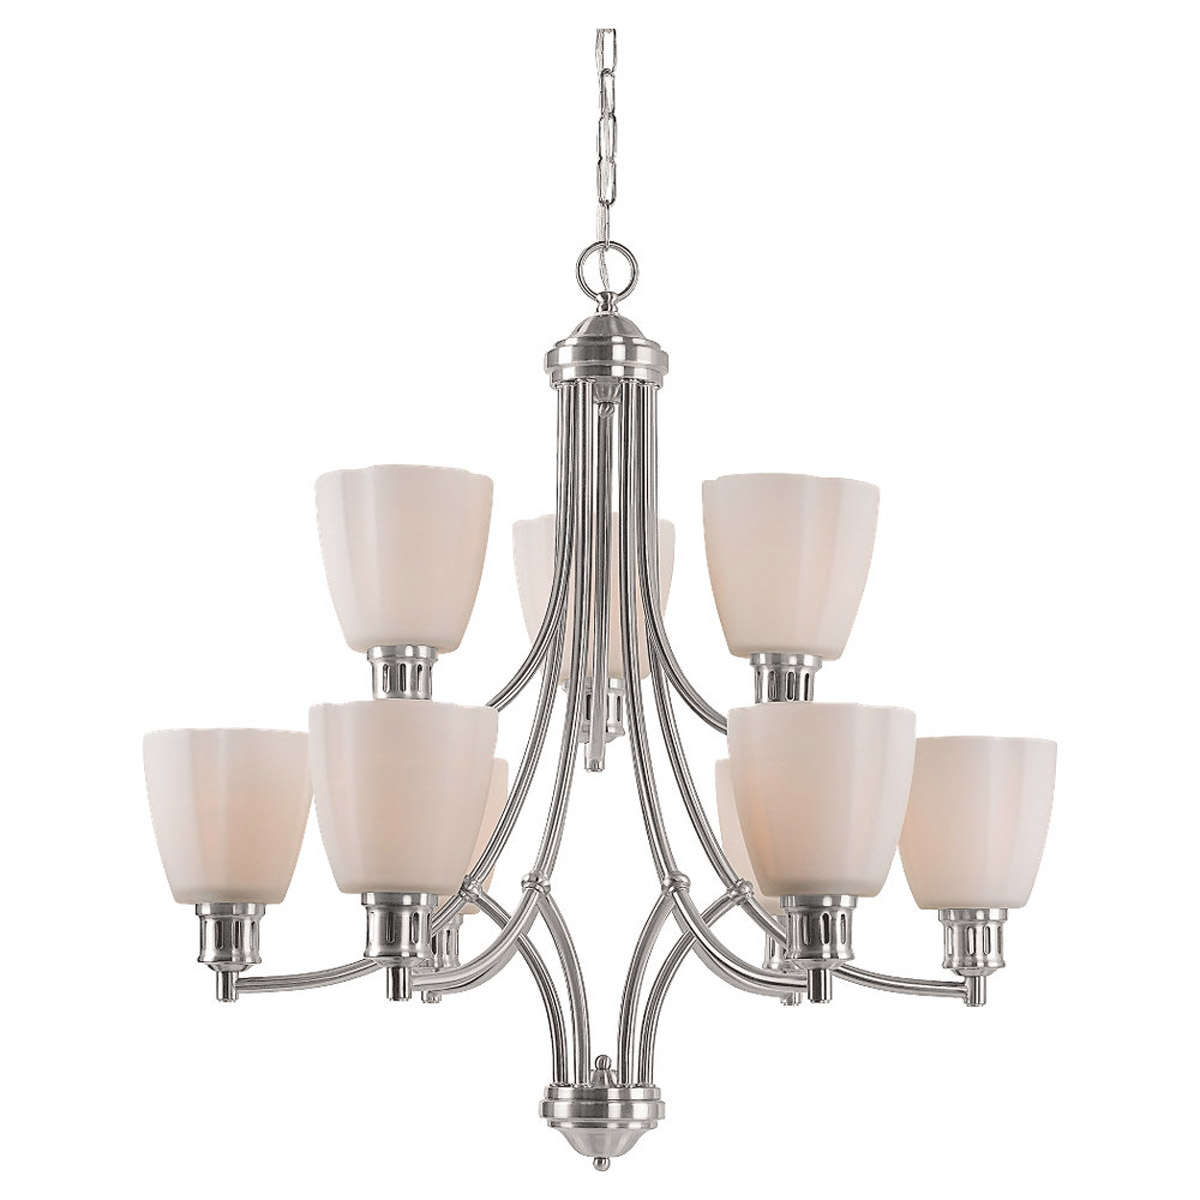 Sea Gull Lighting Century 9 Light Chandelier in Brushed Nickel 31477-962